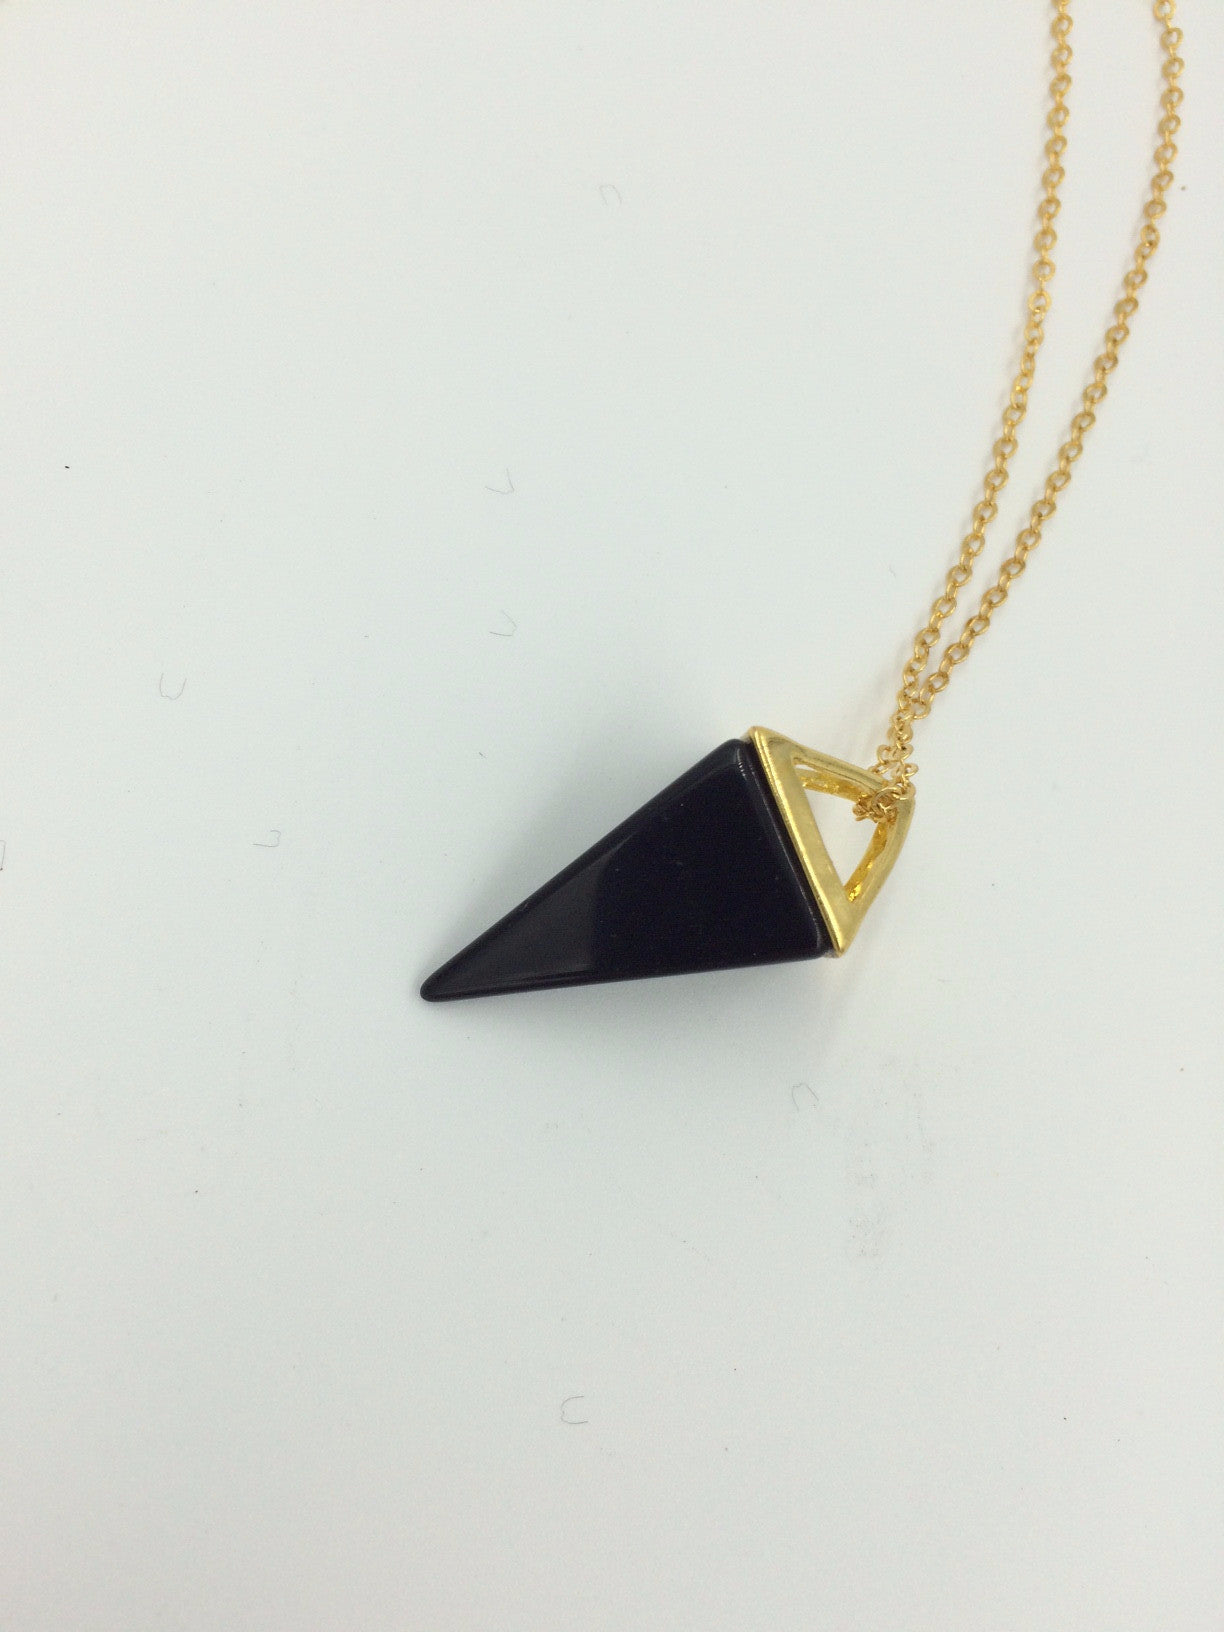 Black Onyx Crystal Triangular Pyramid Pendant